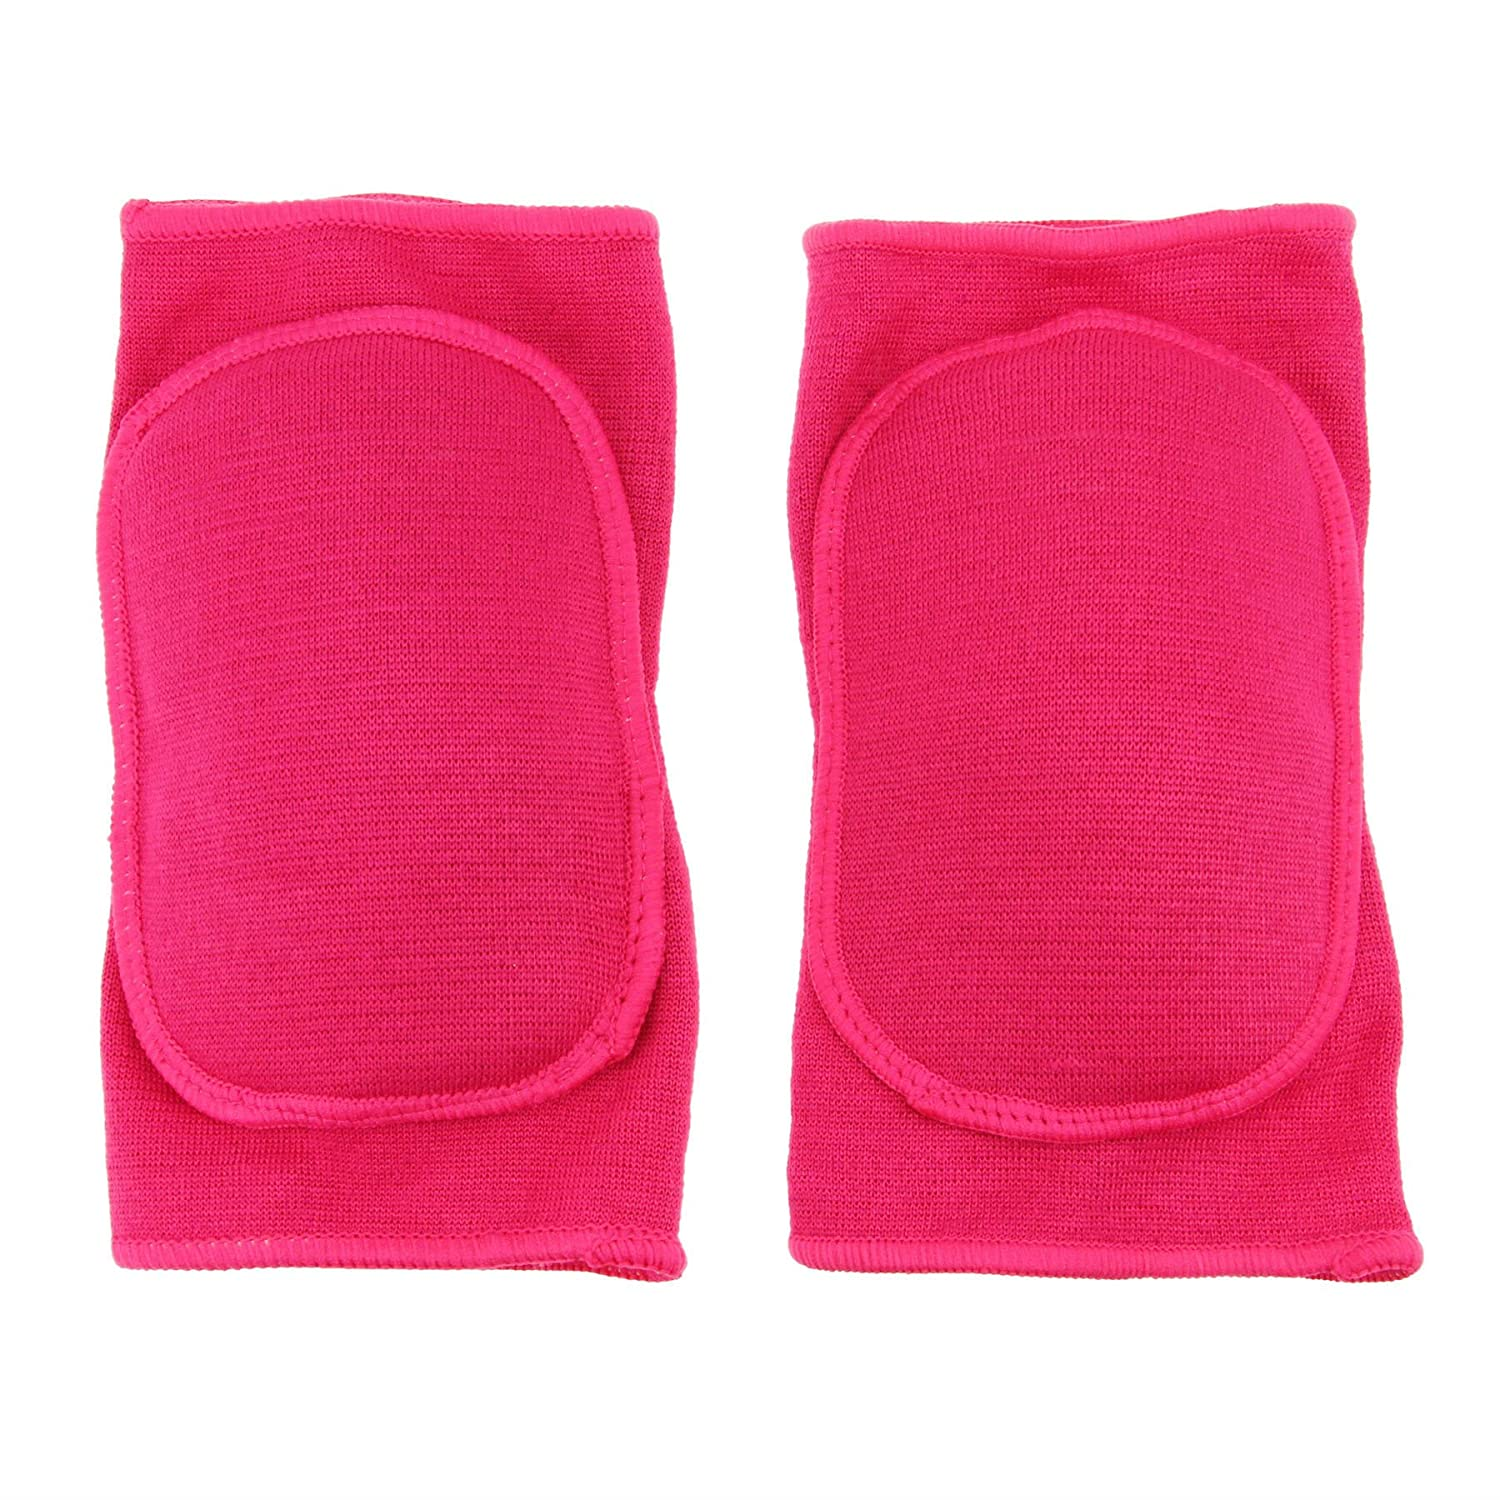 Clobeau Kids Protective Knee Pads, Stretchy Cotton Thicked Breathable Antislip, Collision Avoidance Keedpads Knee Sleeve Brace Support Protector Pad Wrap Tape for Kids Sports Dancing